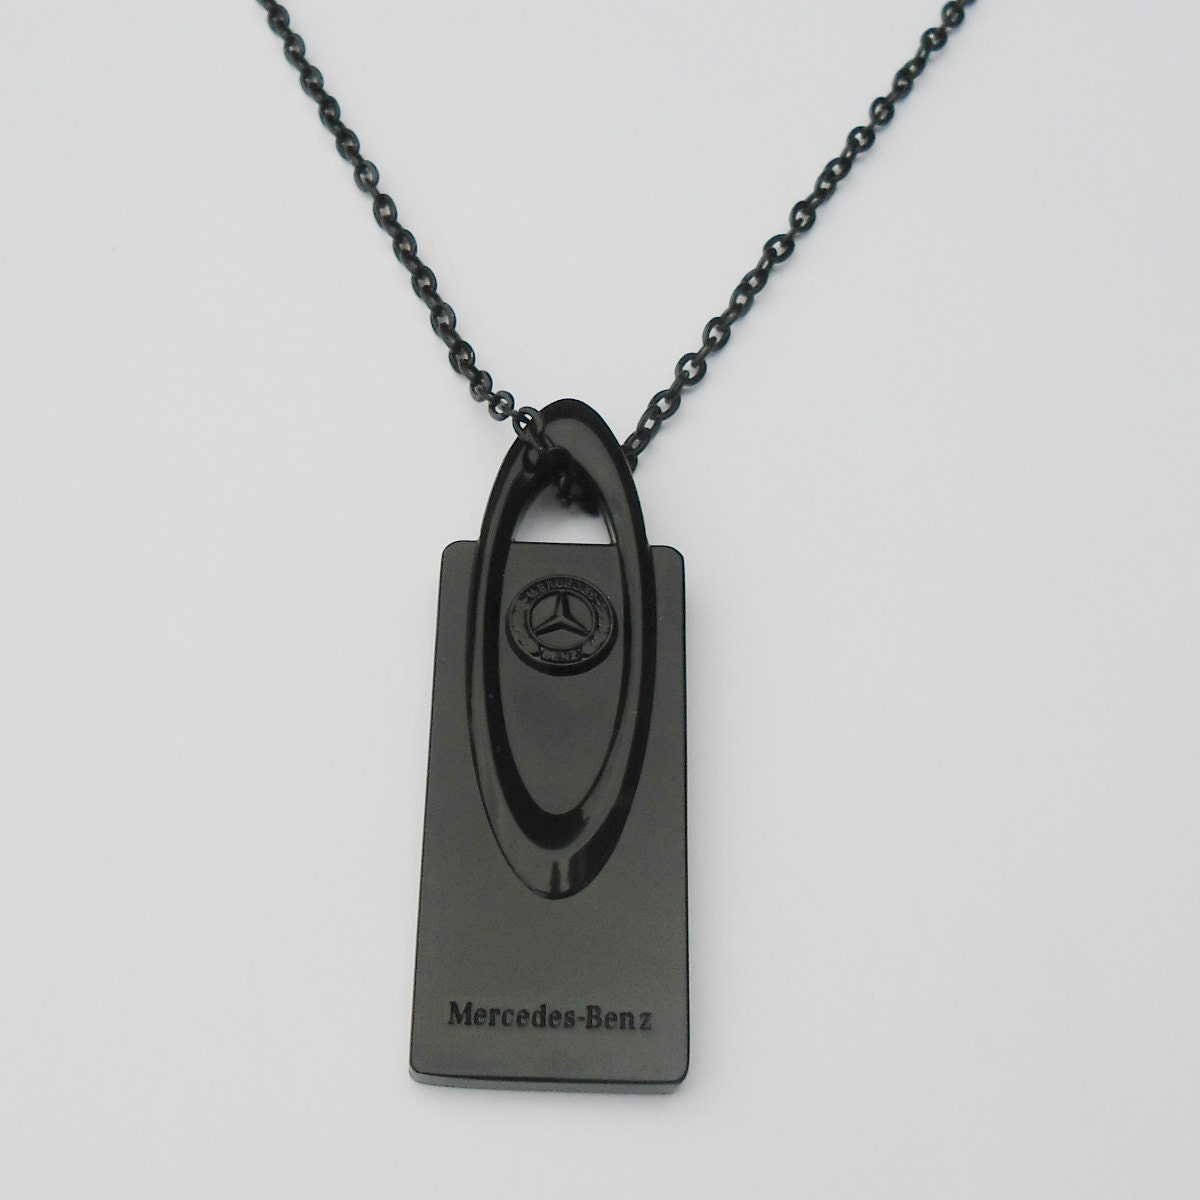 Mercedes benz black or gold pendant mirror dangler necklace for Mercedes benz pendant